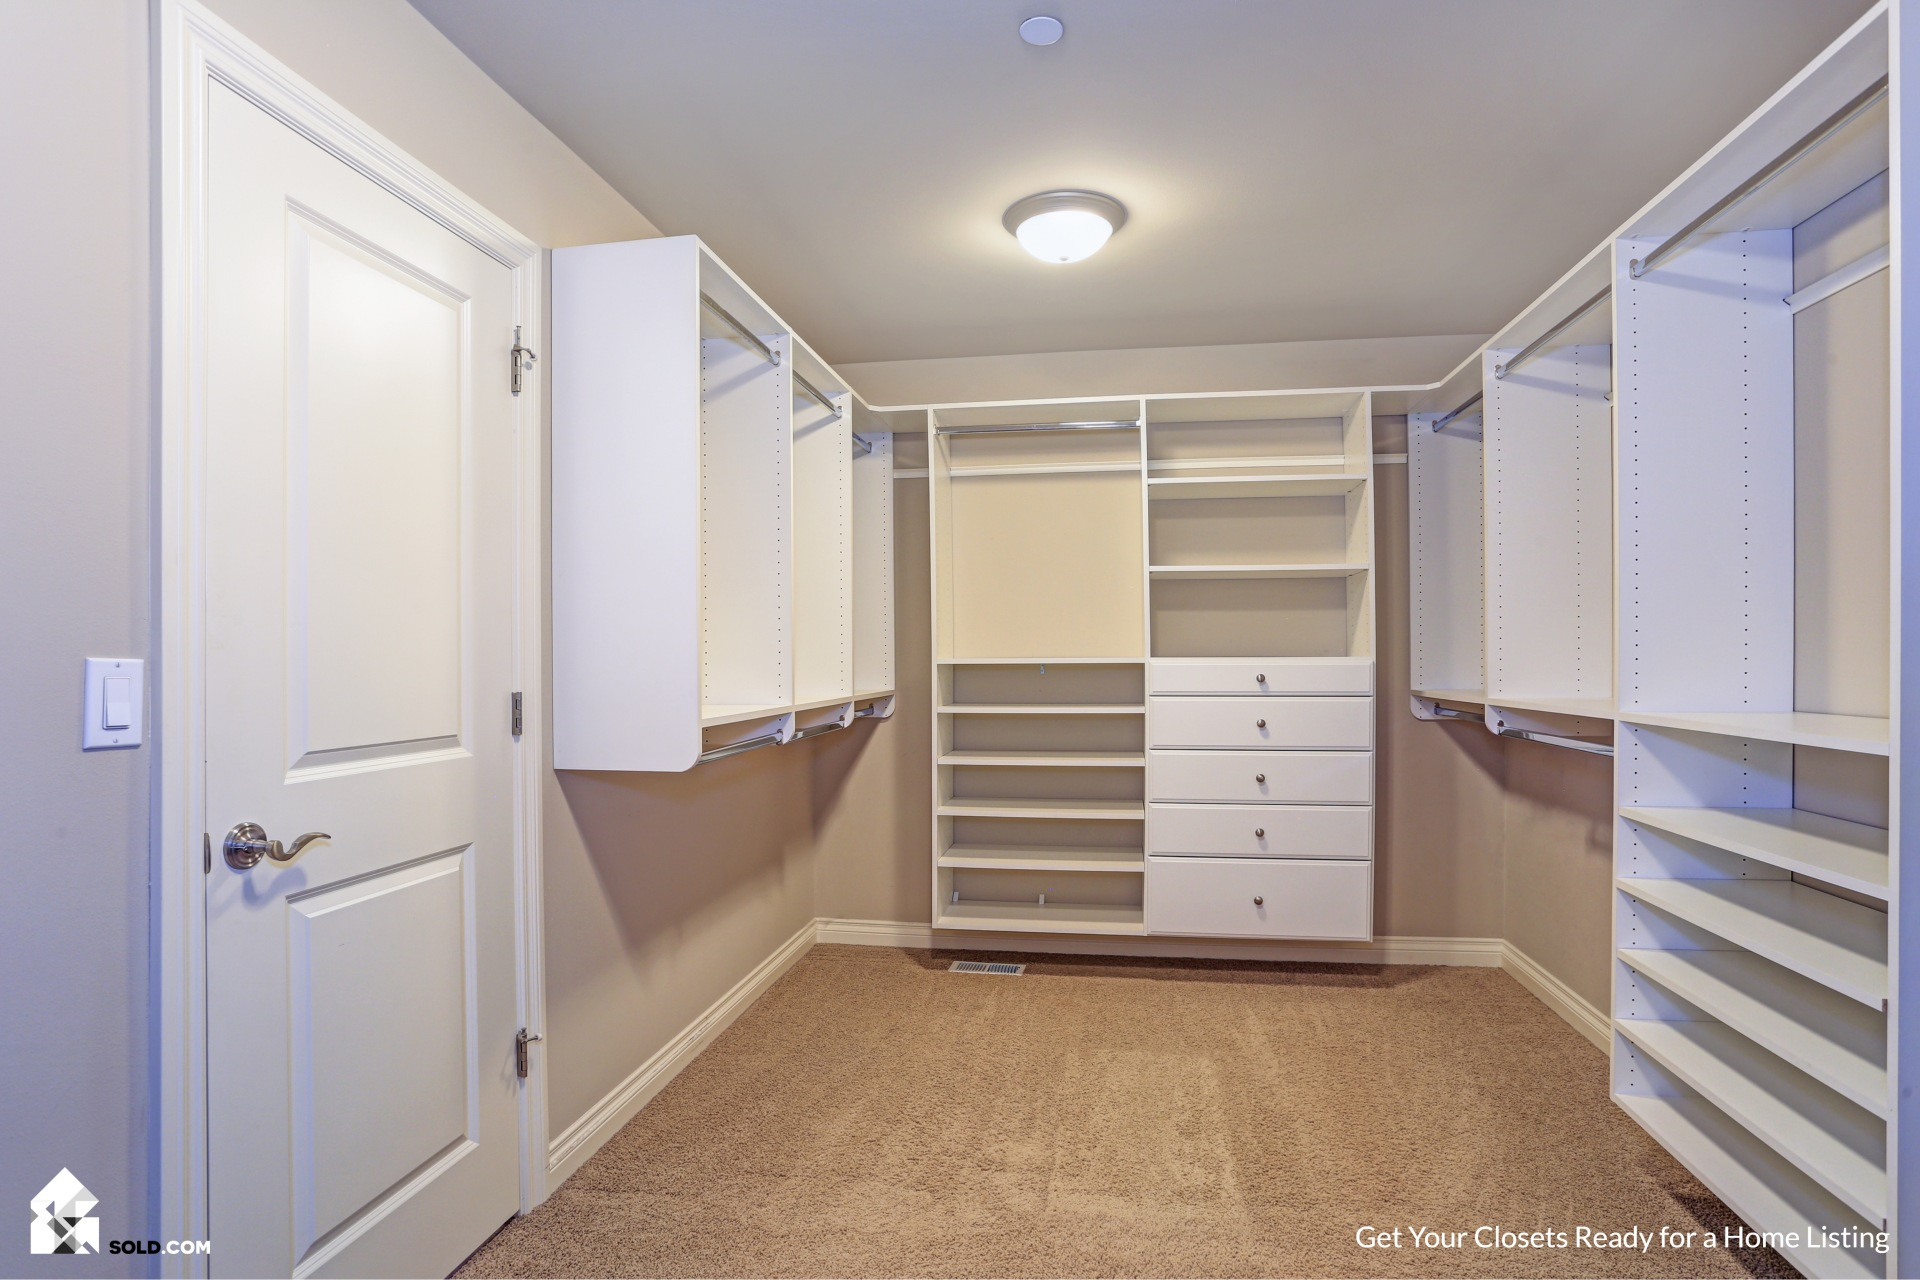 Get Your Closets Ready for a Home Listing